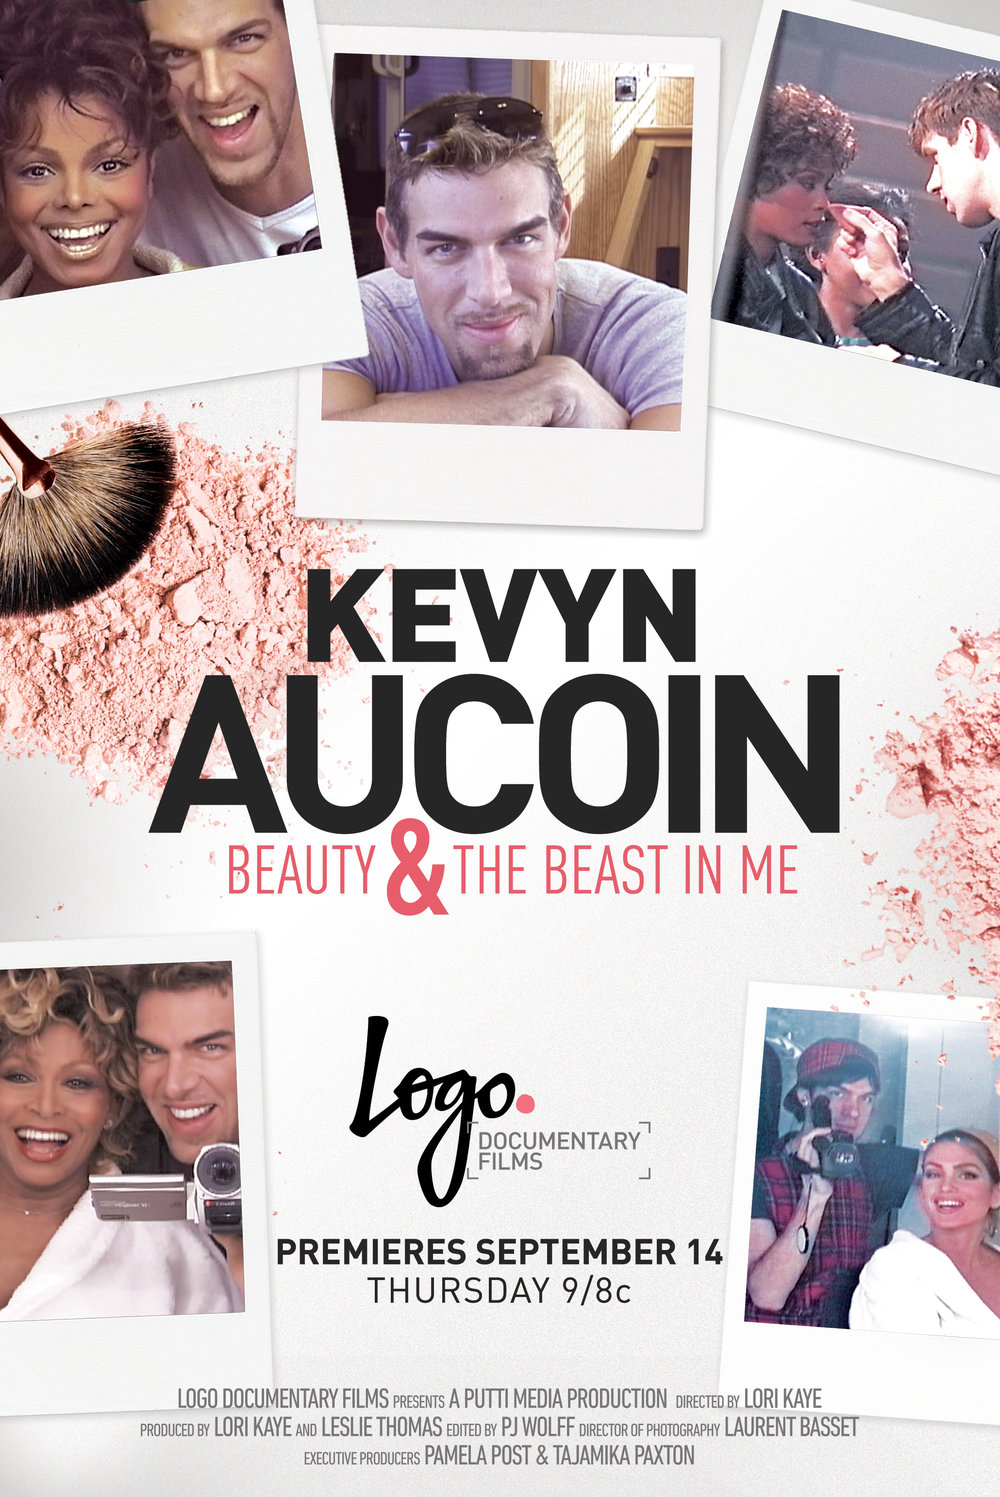 KEVYN AUCOIN /  KEVYN AUCOIN: Beauty & The Beast In Me is an Emmy Award winning documentary about the life of renowned makeup artist Kevyn Aucoin. In the 1980s, Kevyn rose from nothing to become the most sought after fashion and celebrity makeup artist ever. He was a key creative player in the pop culture storm that became the supermodel era of the 1990s. Soon after, celebrities began to seek him out and he was confidante, friend and speed dial necessity for A-listers in music and film. He became a celebrity himself with three best-selling books, Oprah appearances, numerous profiles and his own line of makeup. He used his celebrity to fight for gay rights and acceptance. He died tragically at age 40 in 2002.